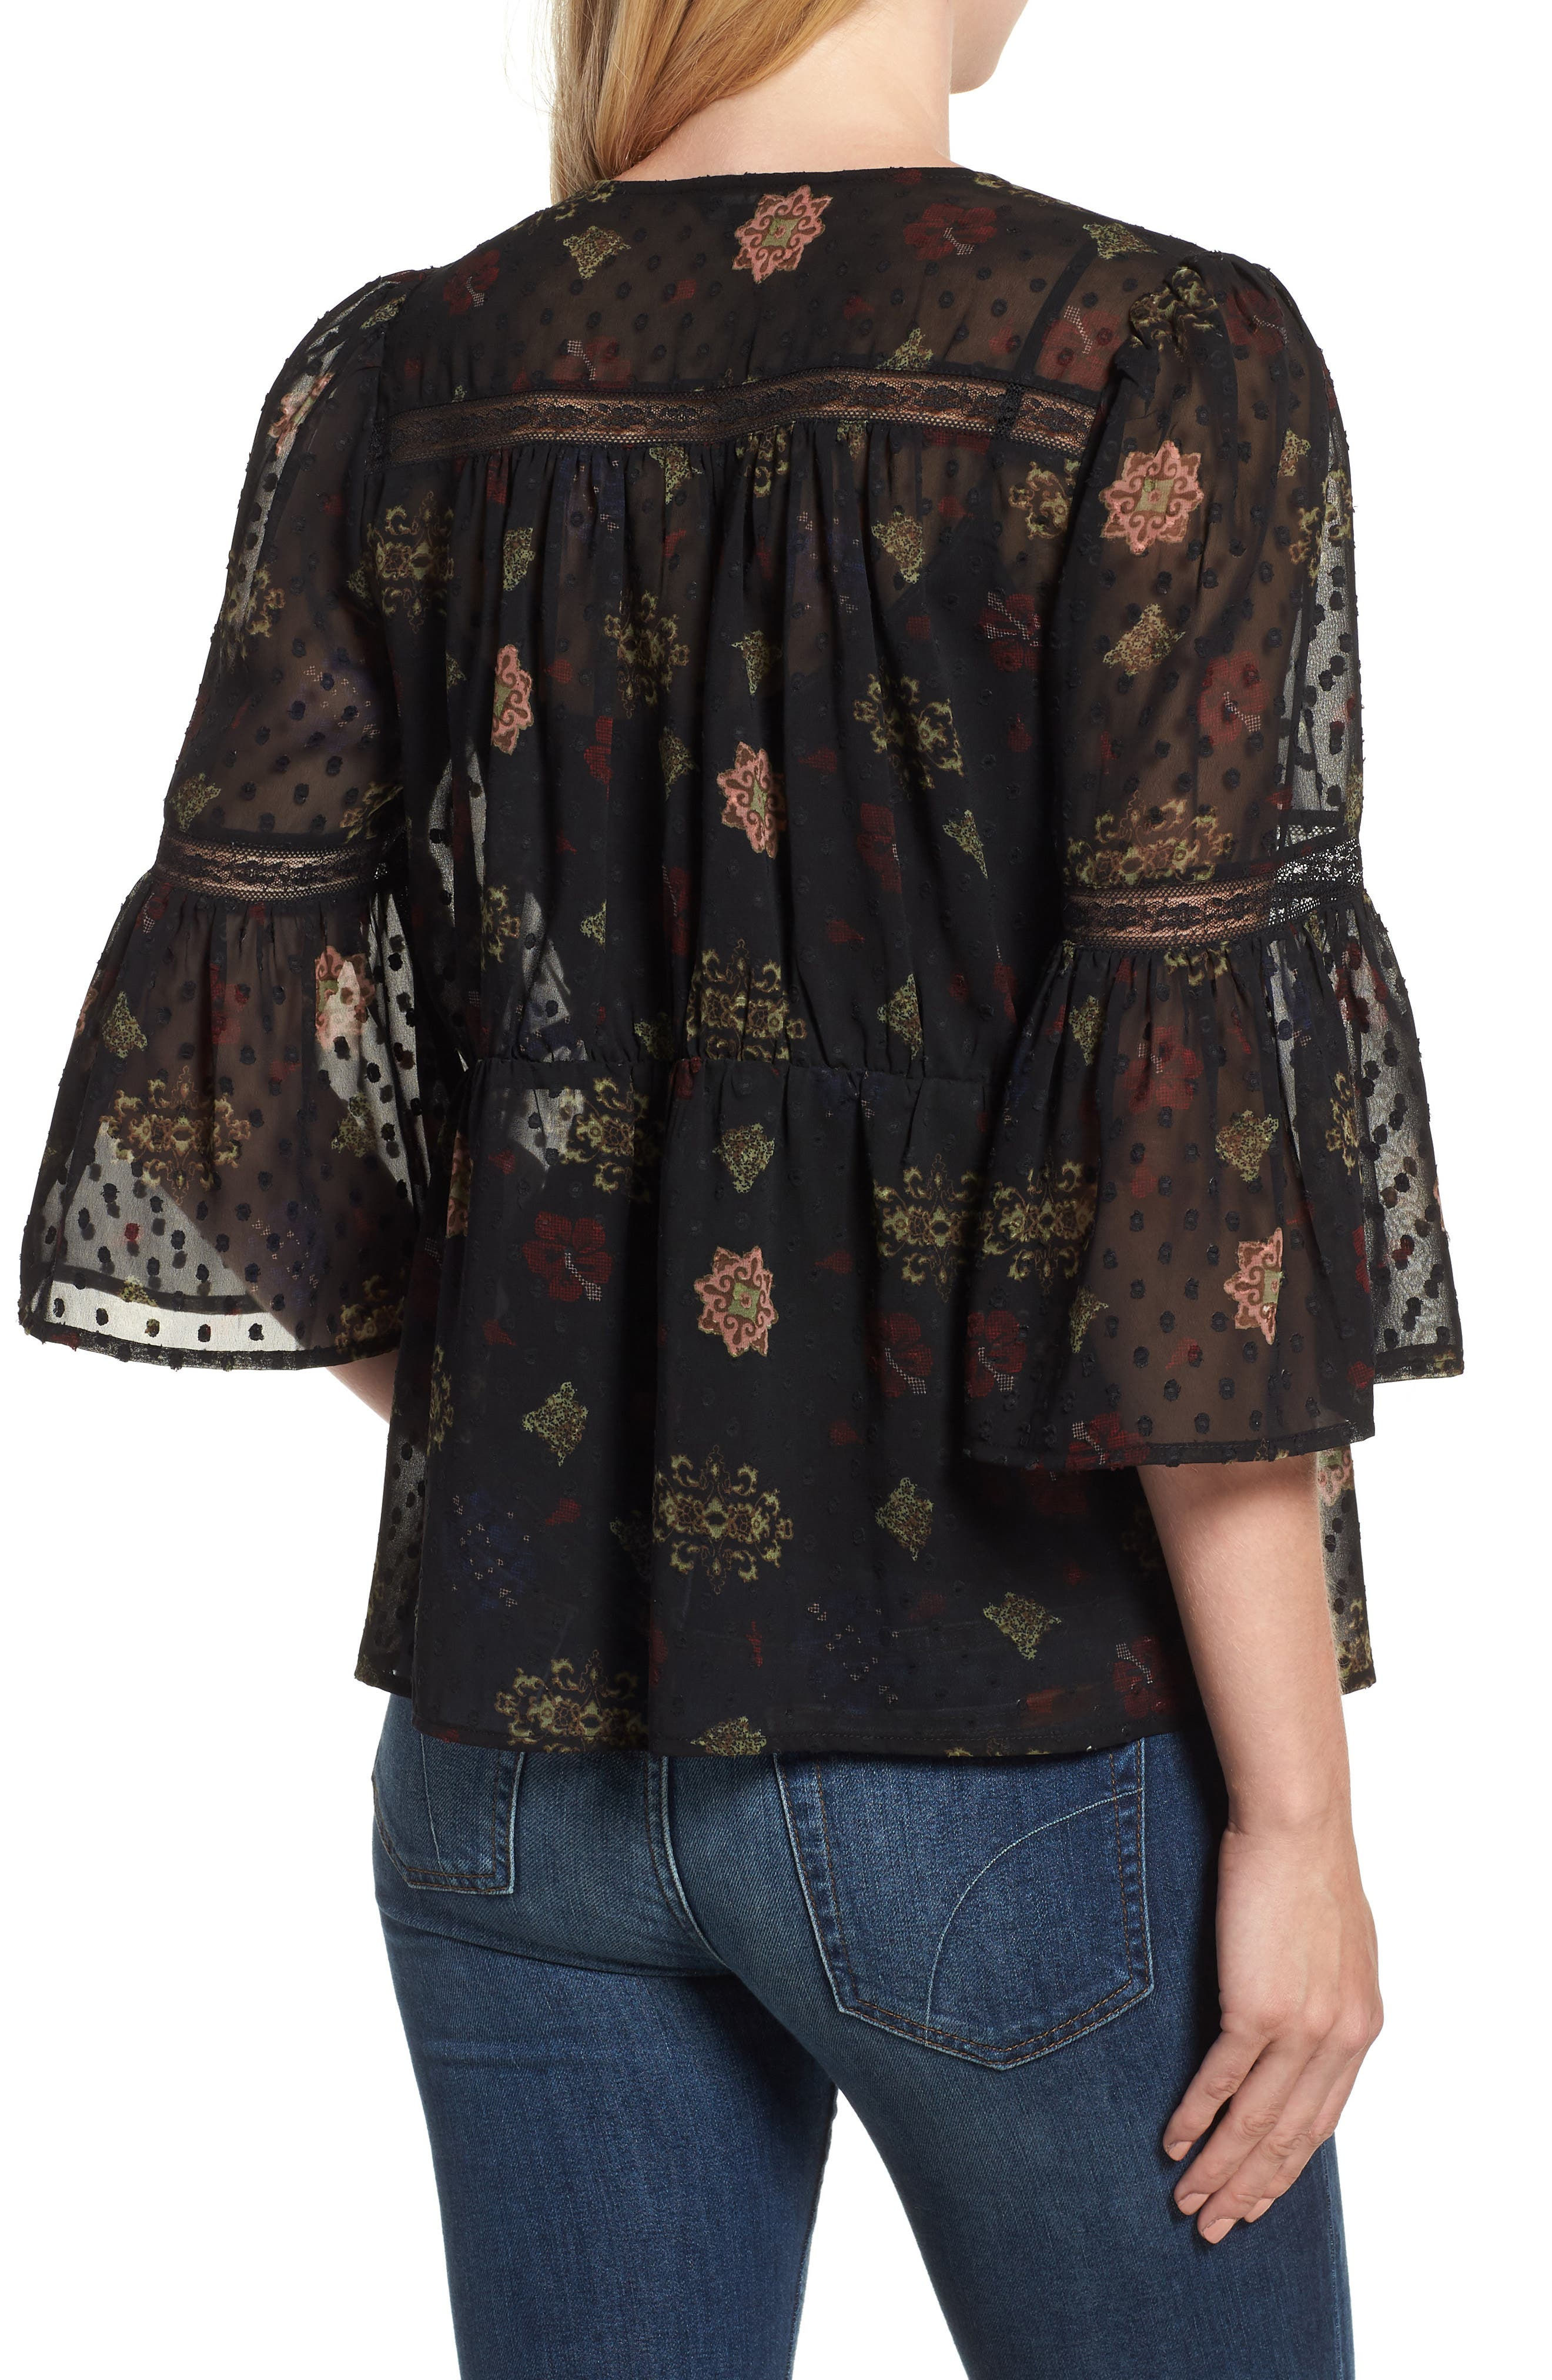 Swiss Dot Sheer Floral Blouse,                             Alternate thumbnail 2, color,                             001